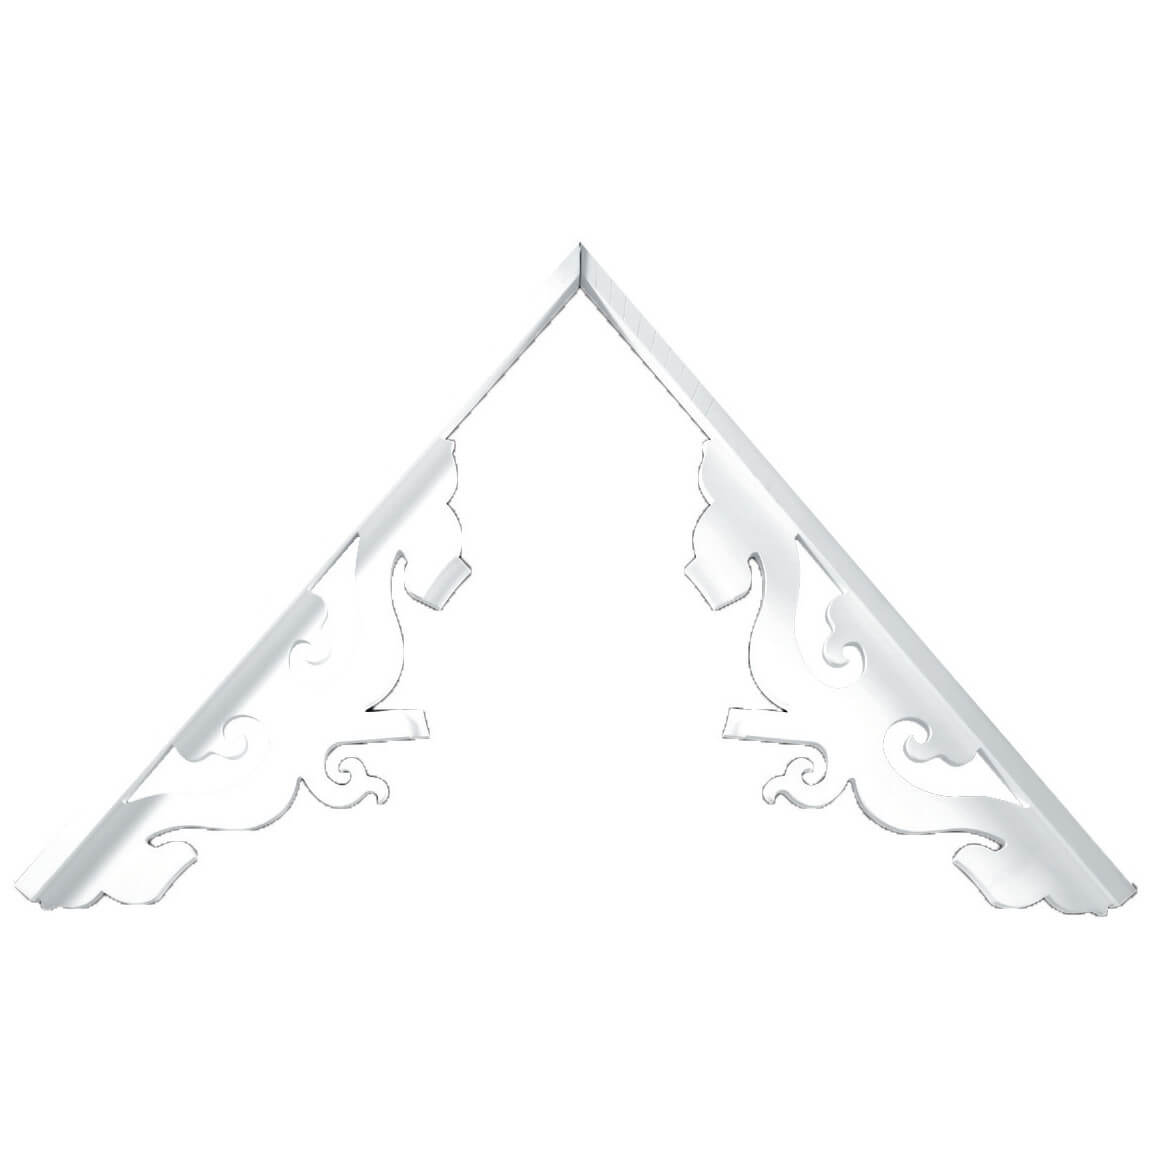 Fypon polyurethane stewart system gable pediments from for Fypon gable pediments